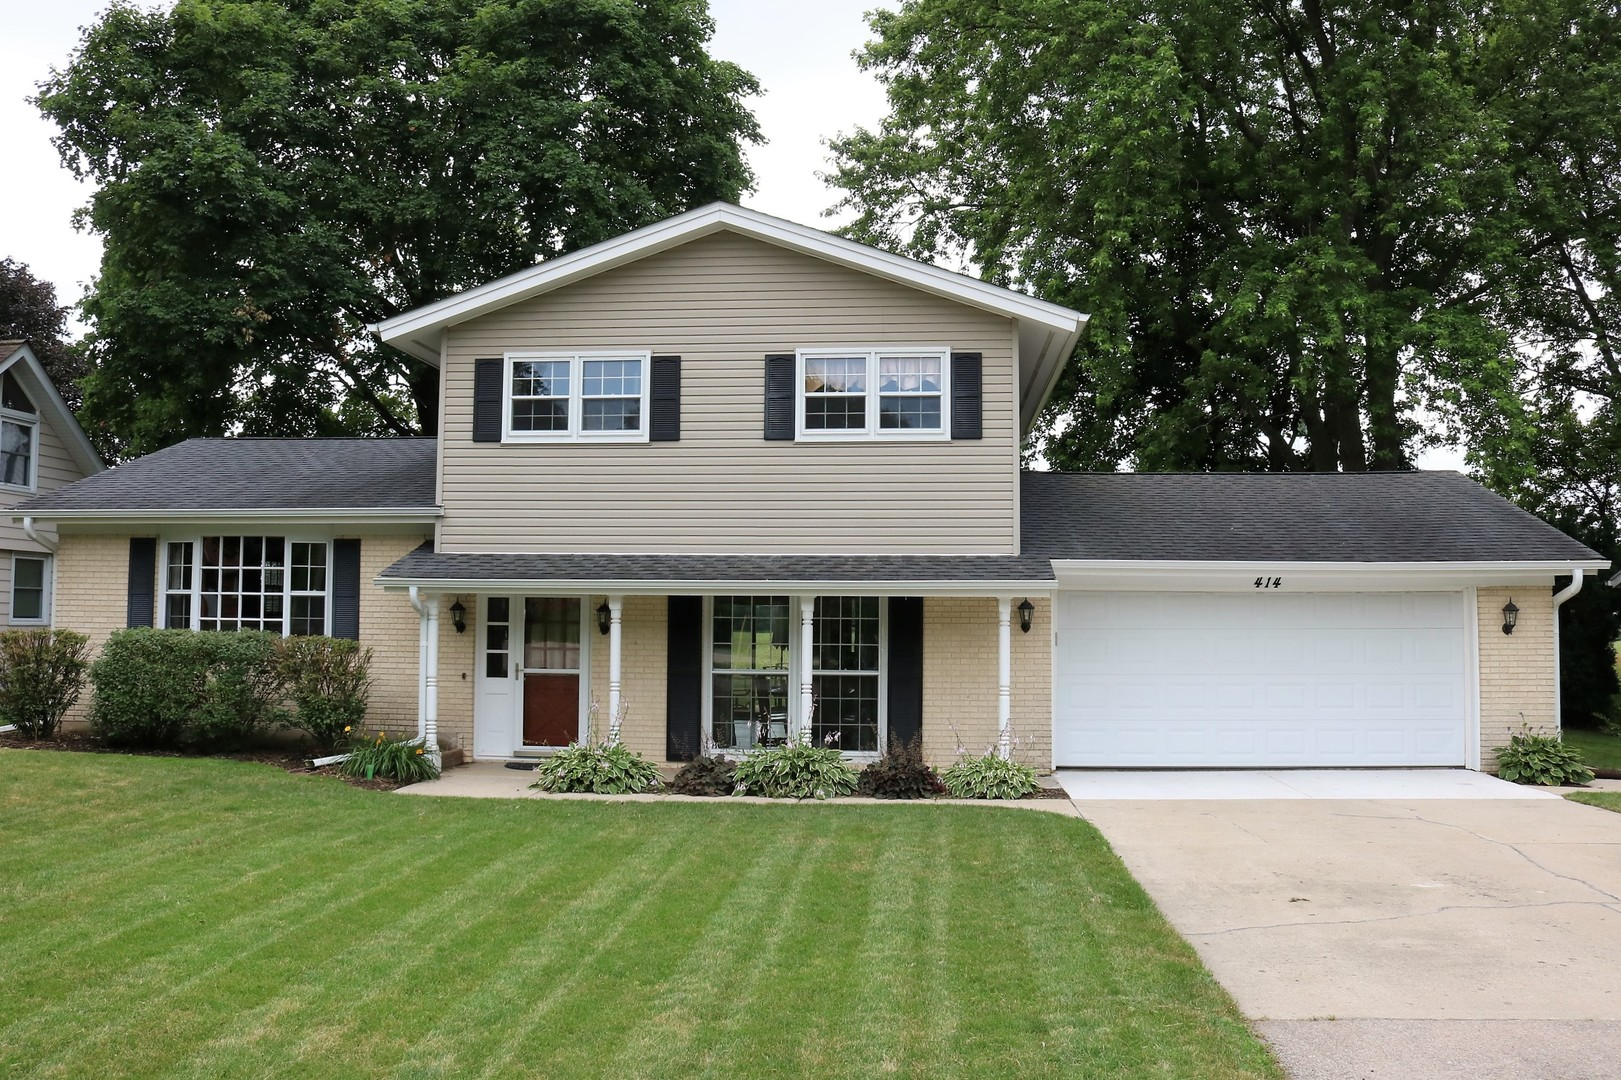 Photo for 414 Maplewood Drive, Sycamore, IL 60178 (MLS # 10485791)